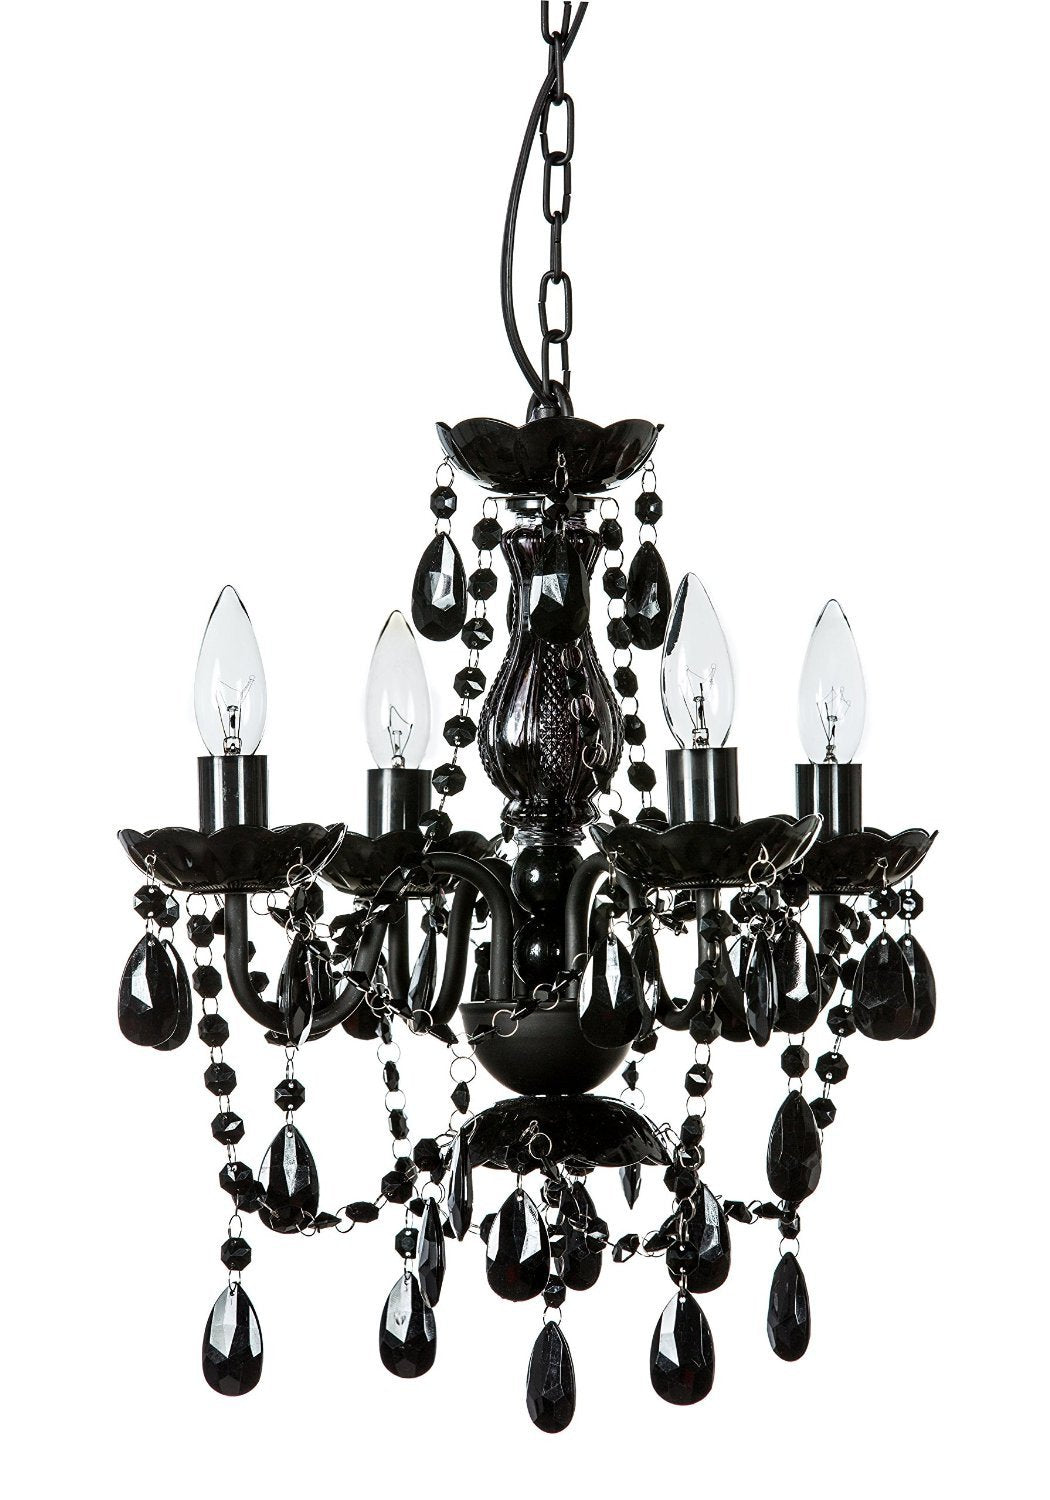 Blakely Black Acrylic Crystal Boho Gypsy Chandelier in 3 Sizes-GoGetGlam  sc 1 st  GoGetGlam.com & Blakely Black Acrylic Crystal Boho Gypsy Chandelier in 3 Sizes